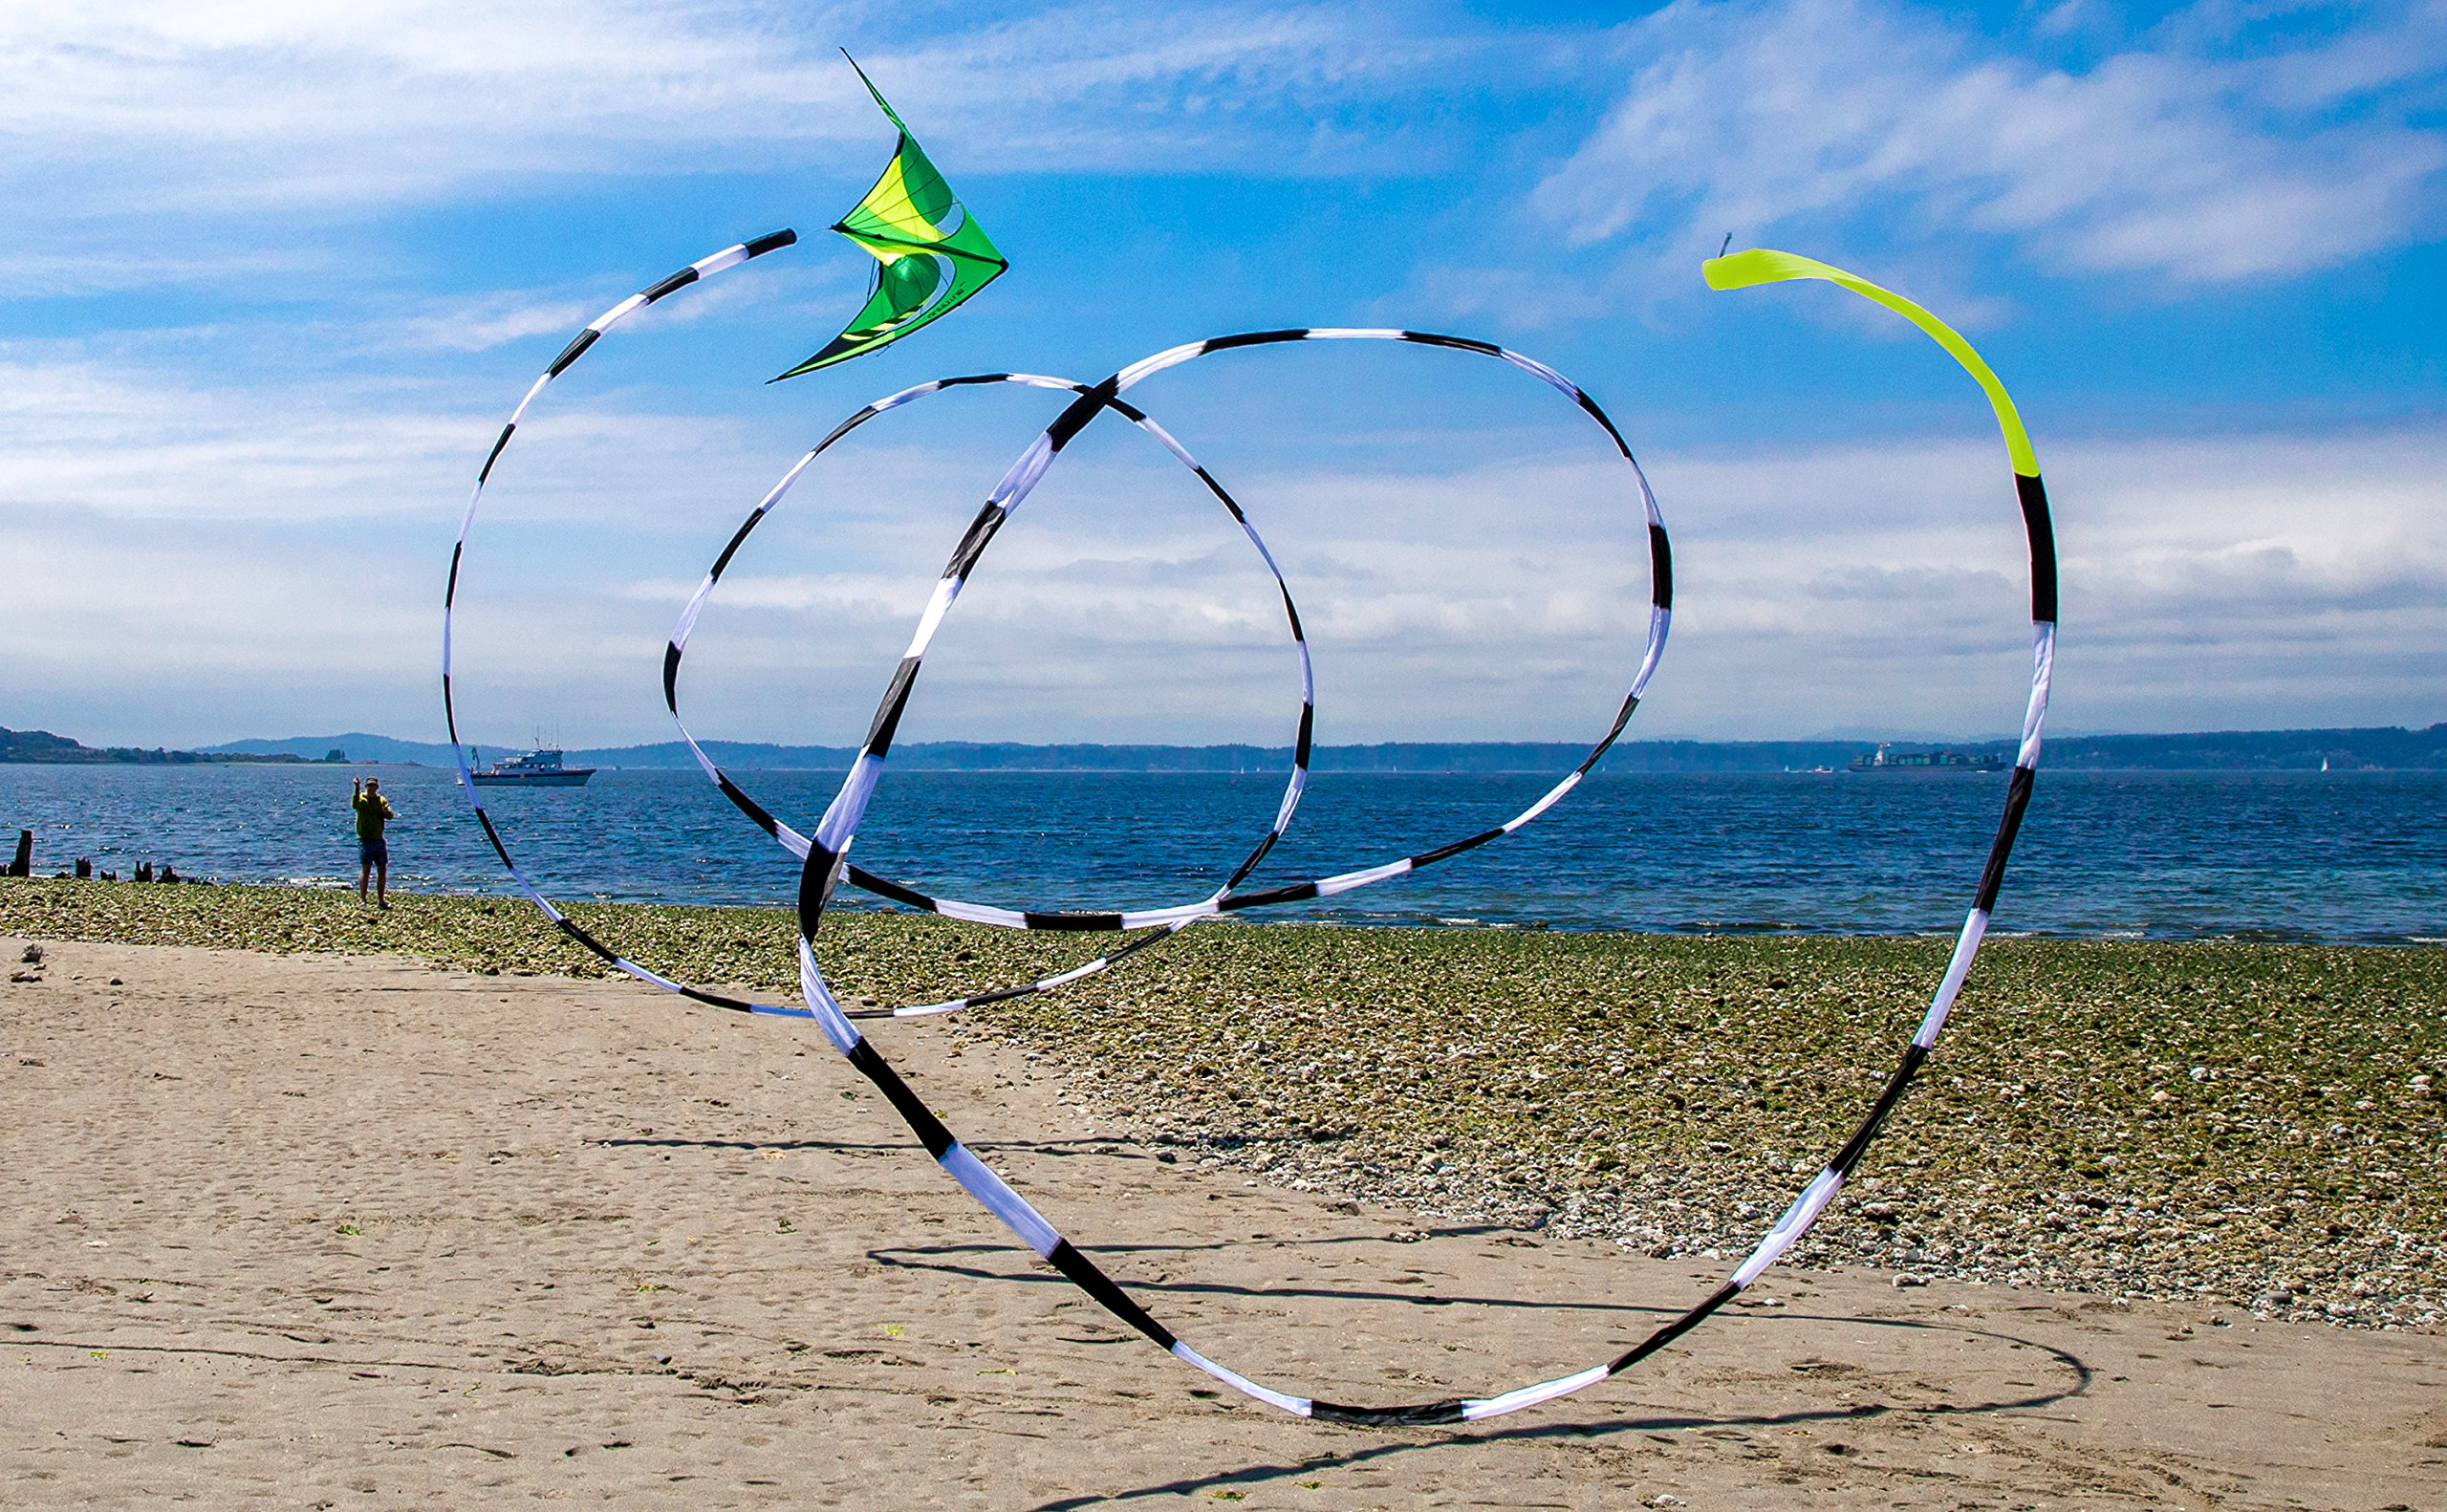 Prism 75-foot Kite Tube Tail by Prism Kite Technology (Image #3)